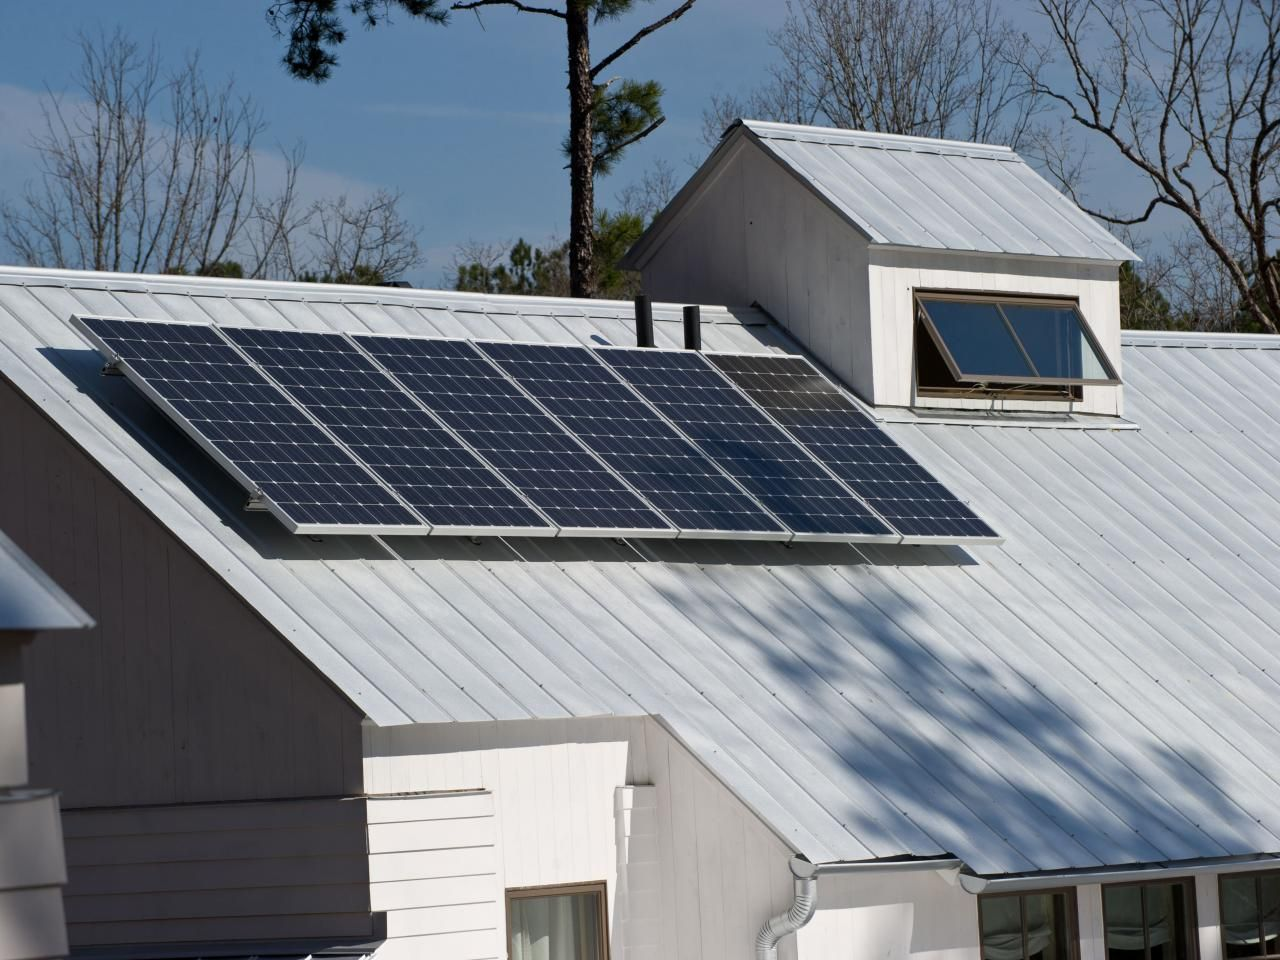 Home Renovation Ideas Mistakes To Avoid Renovations Solar Panels Home Renovation